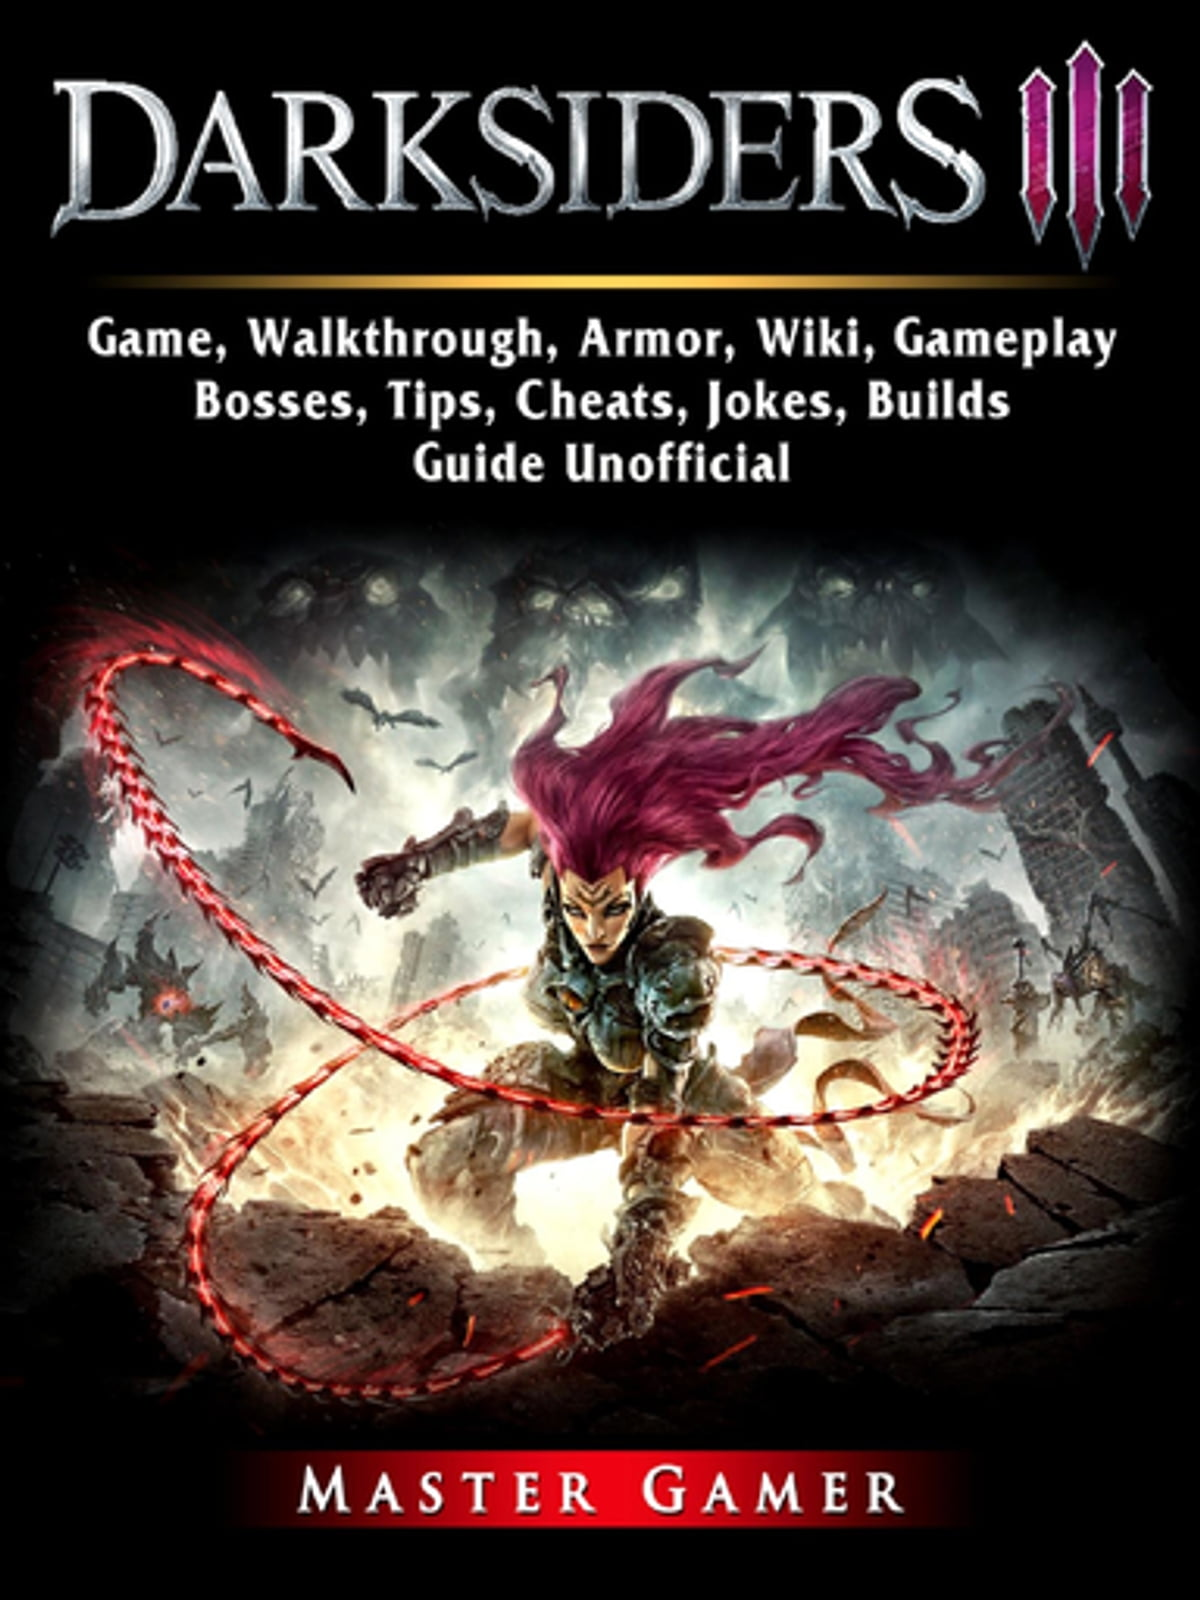 Darksiders 3 Game, Walkthrough, Armor, Wiki, Gameplay, Bosses, Tips,  Cheats, Jokes, Builds, Guide Unofficial ebook by Master Gamer - Rakuten Kobo